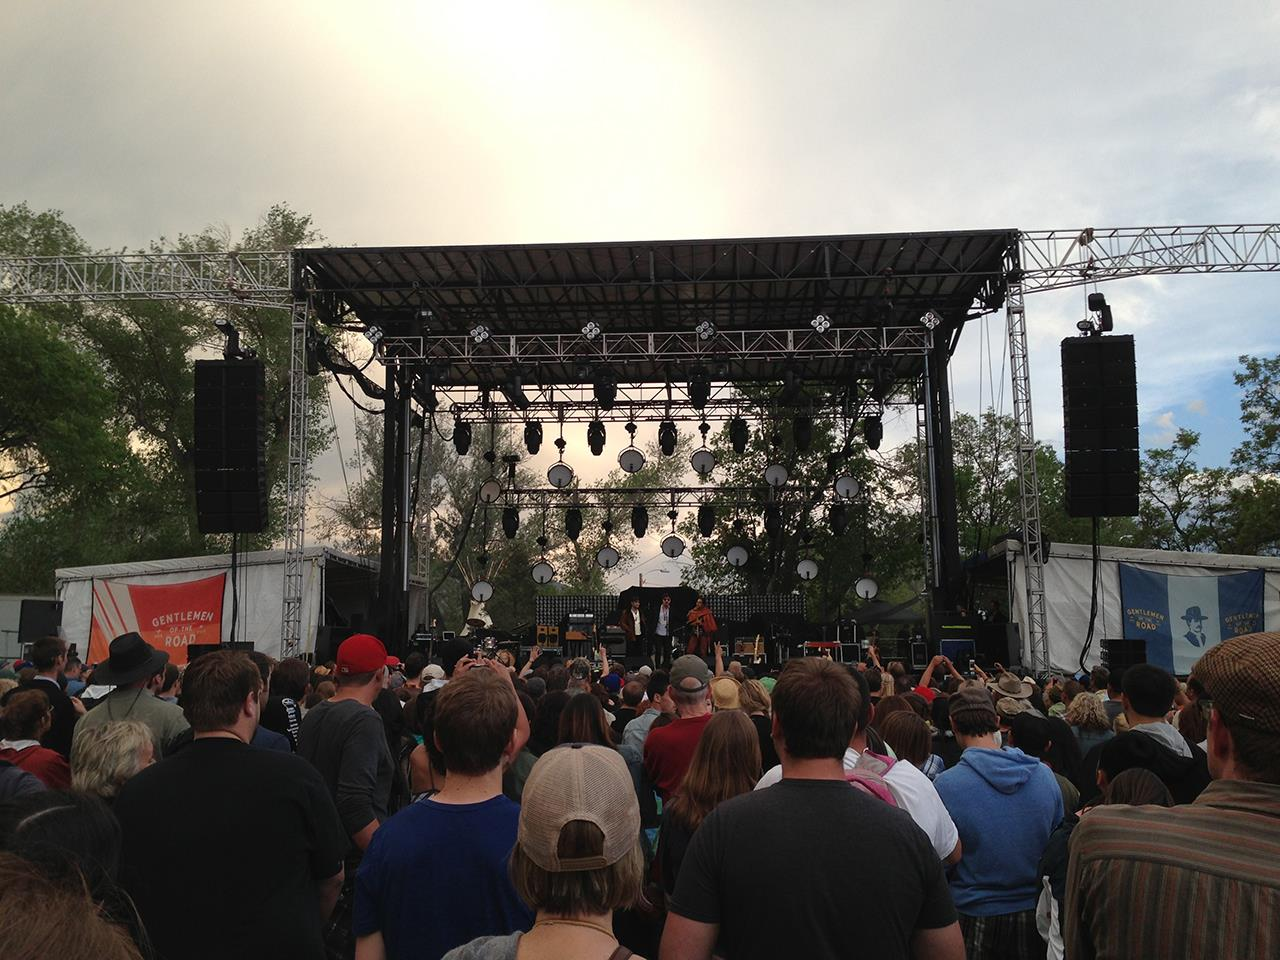 #Taos recreation #outdoor concert #Mumford and Sons #Kit Carson Park #Taos #New Mexico